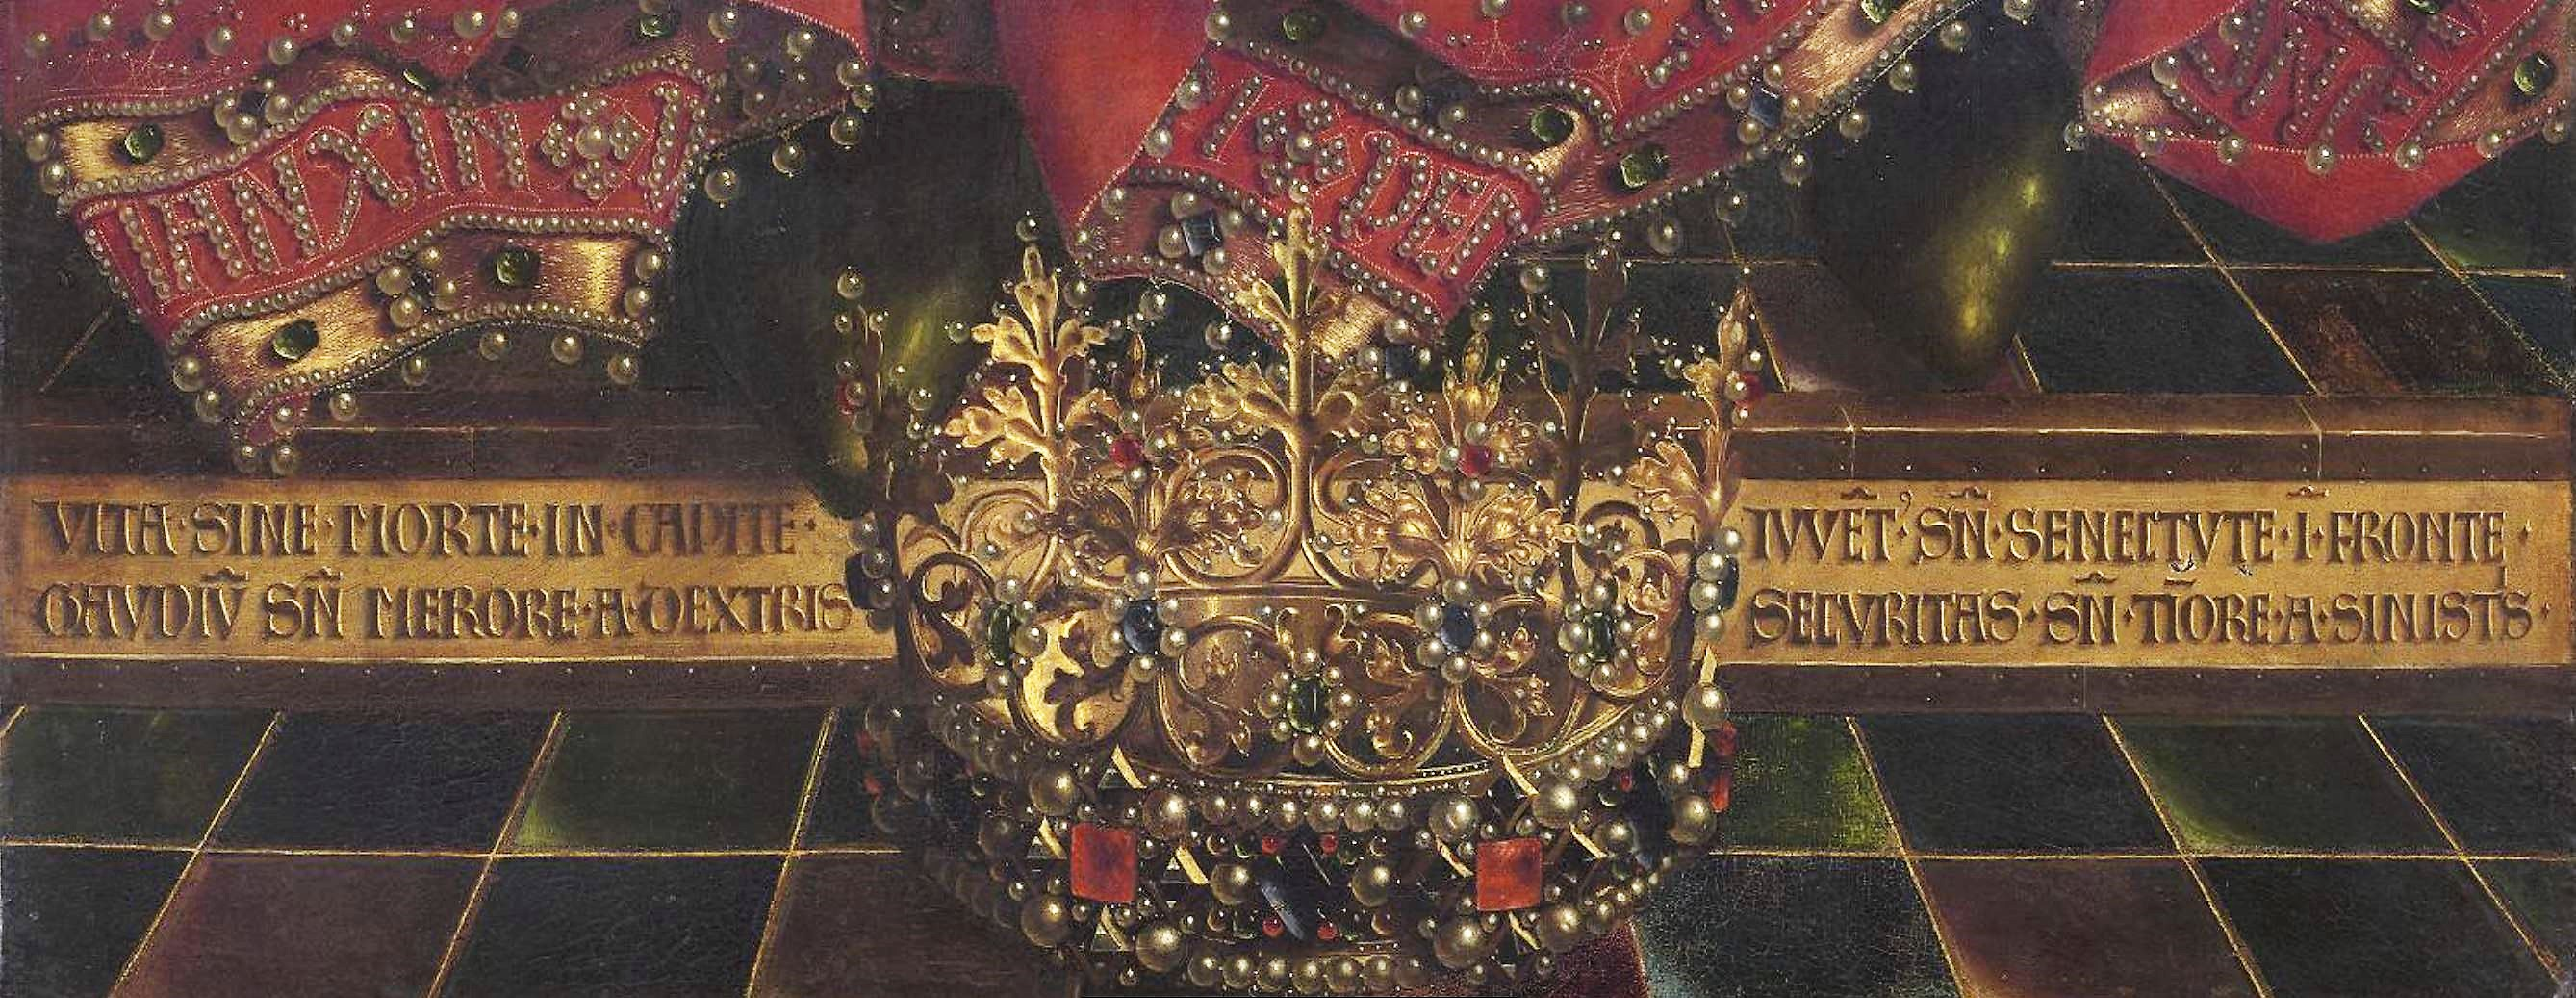 Van Eyck 1432 Retable de Gand inscrition en bas